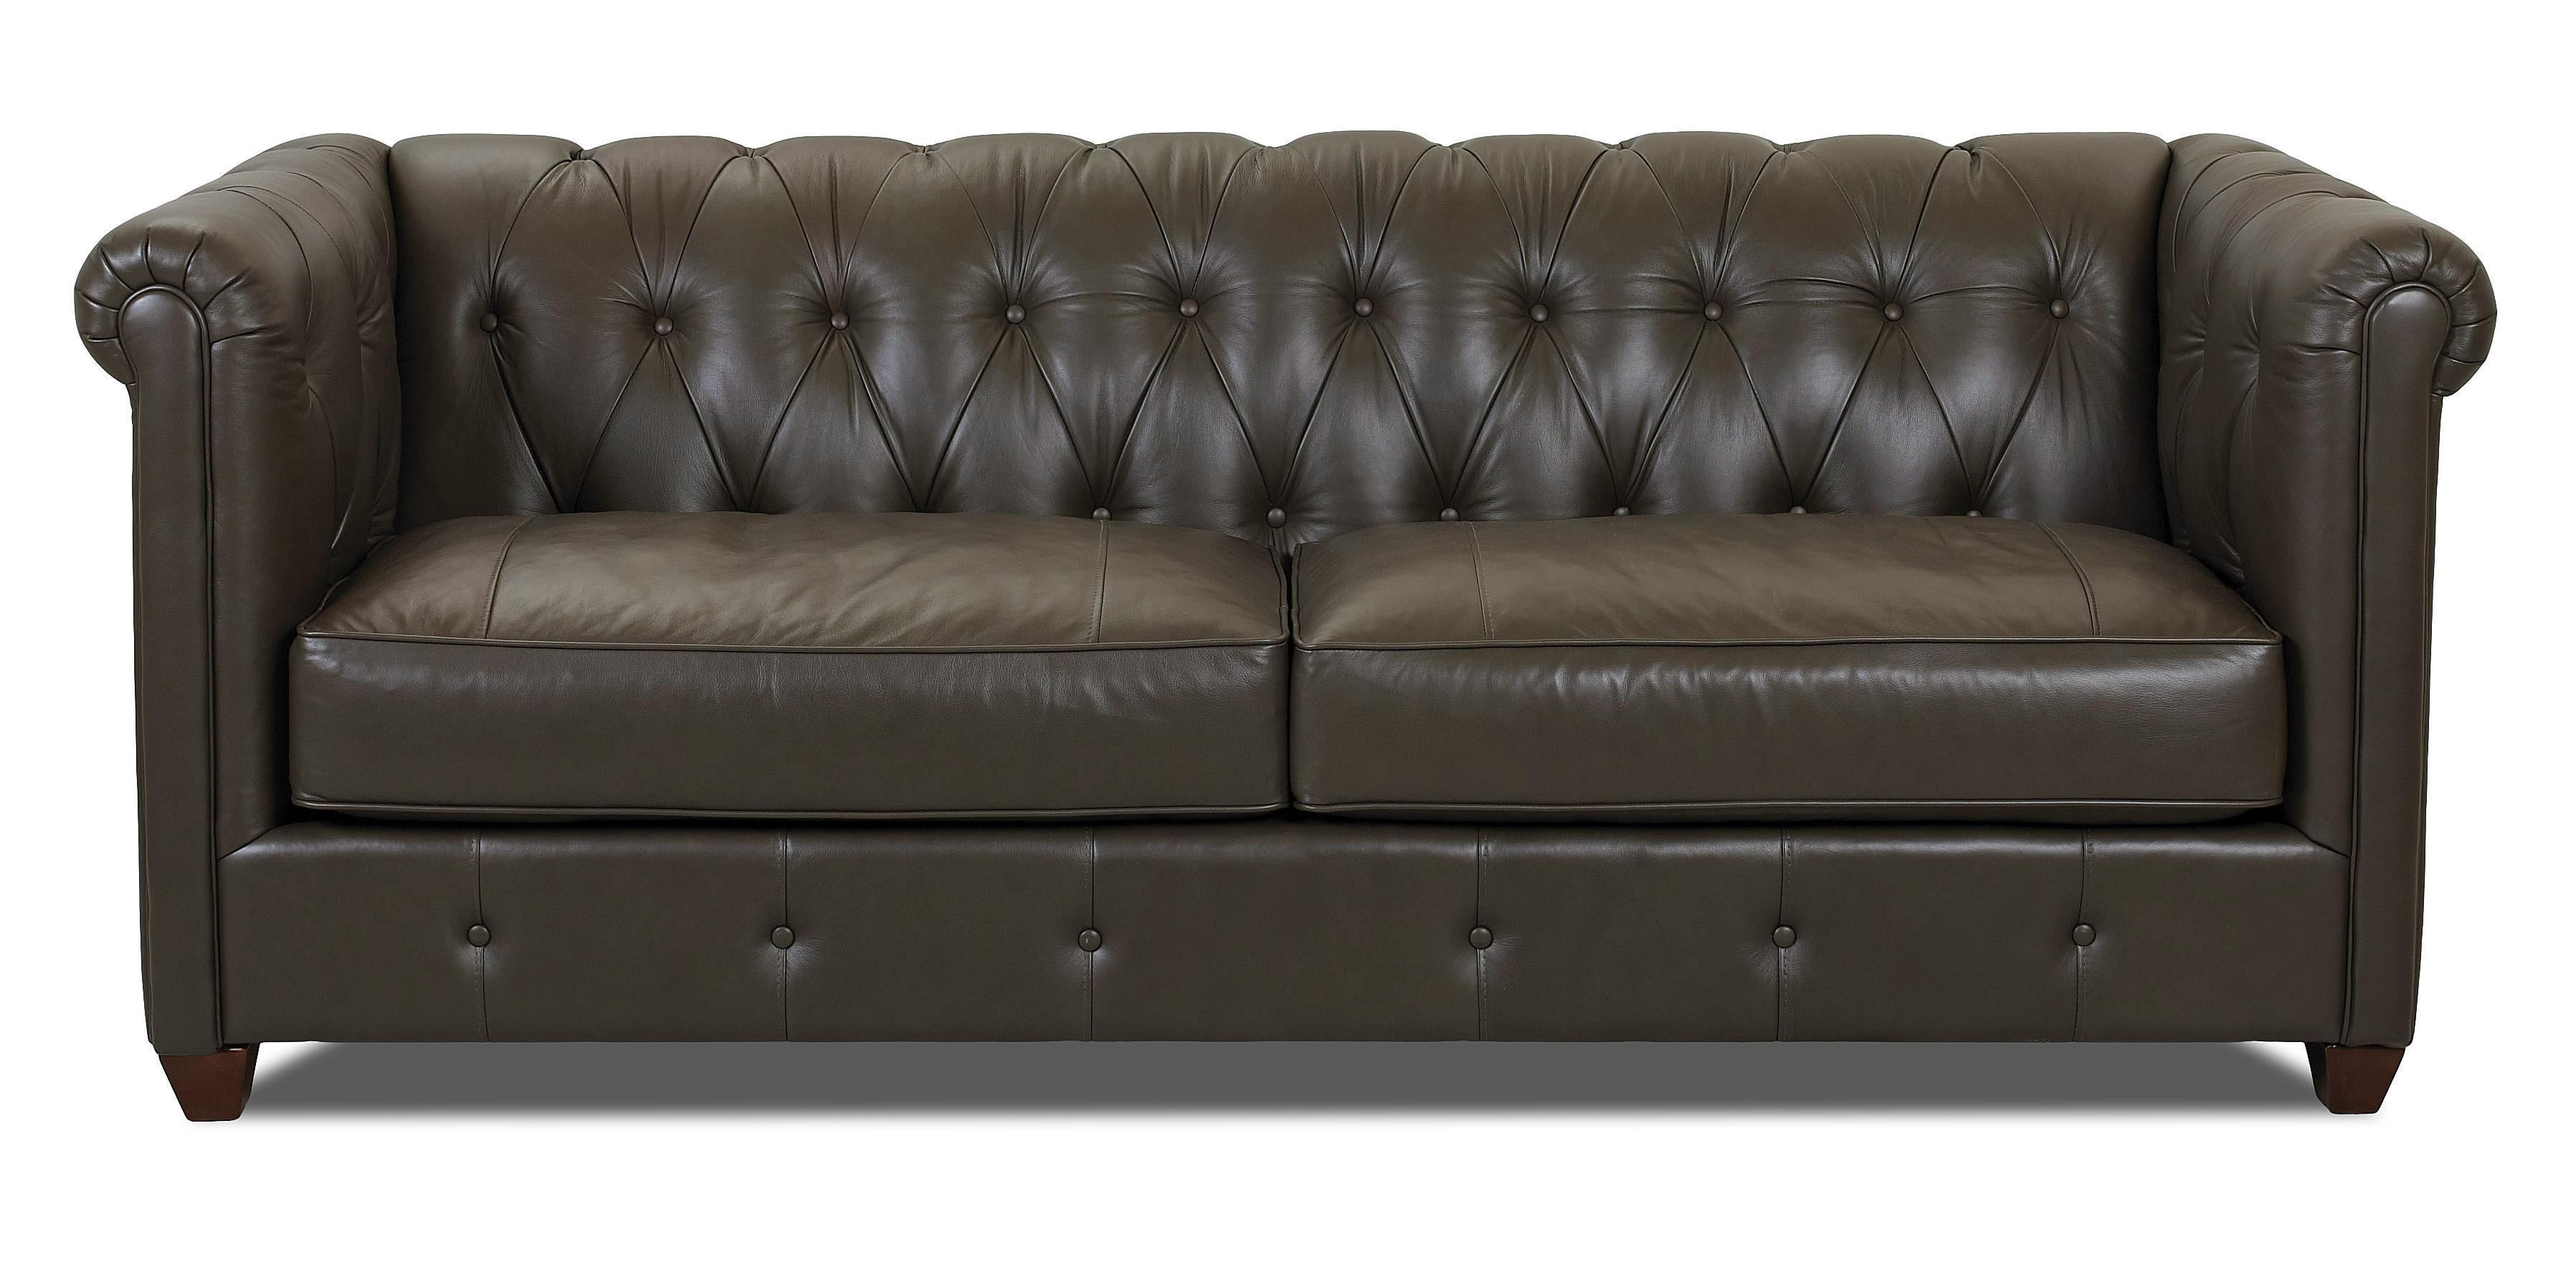 Beech Mountain Traditional Chesterfield Sofa by Klaussner at Johnny Janosik